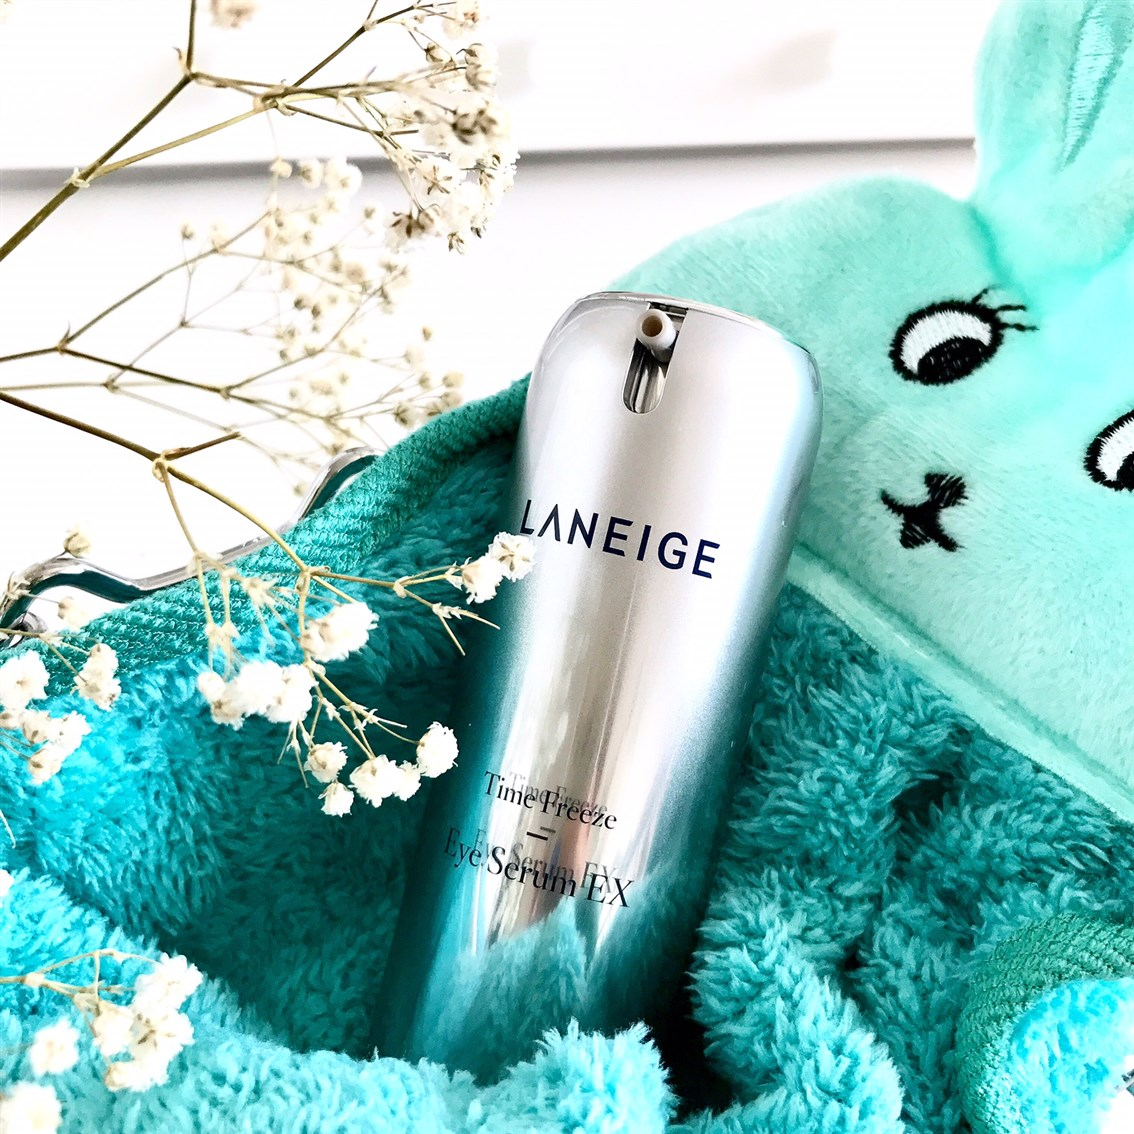 Laneige Time Freeze Eye Serum EX, Laneige esencja Time Freeze